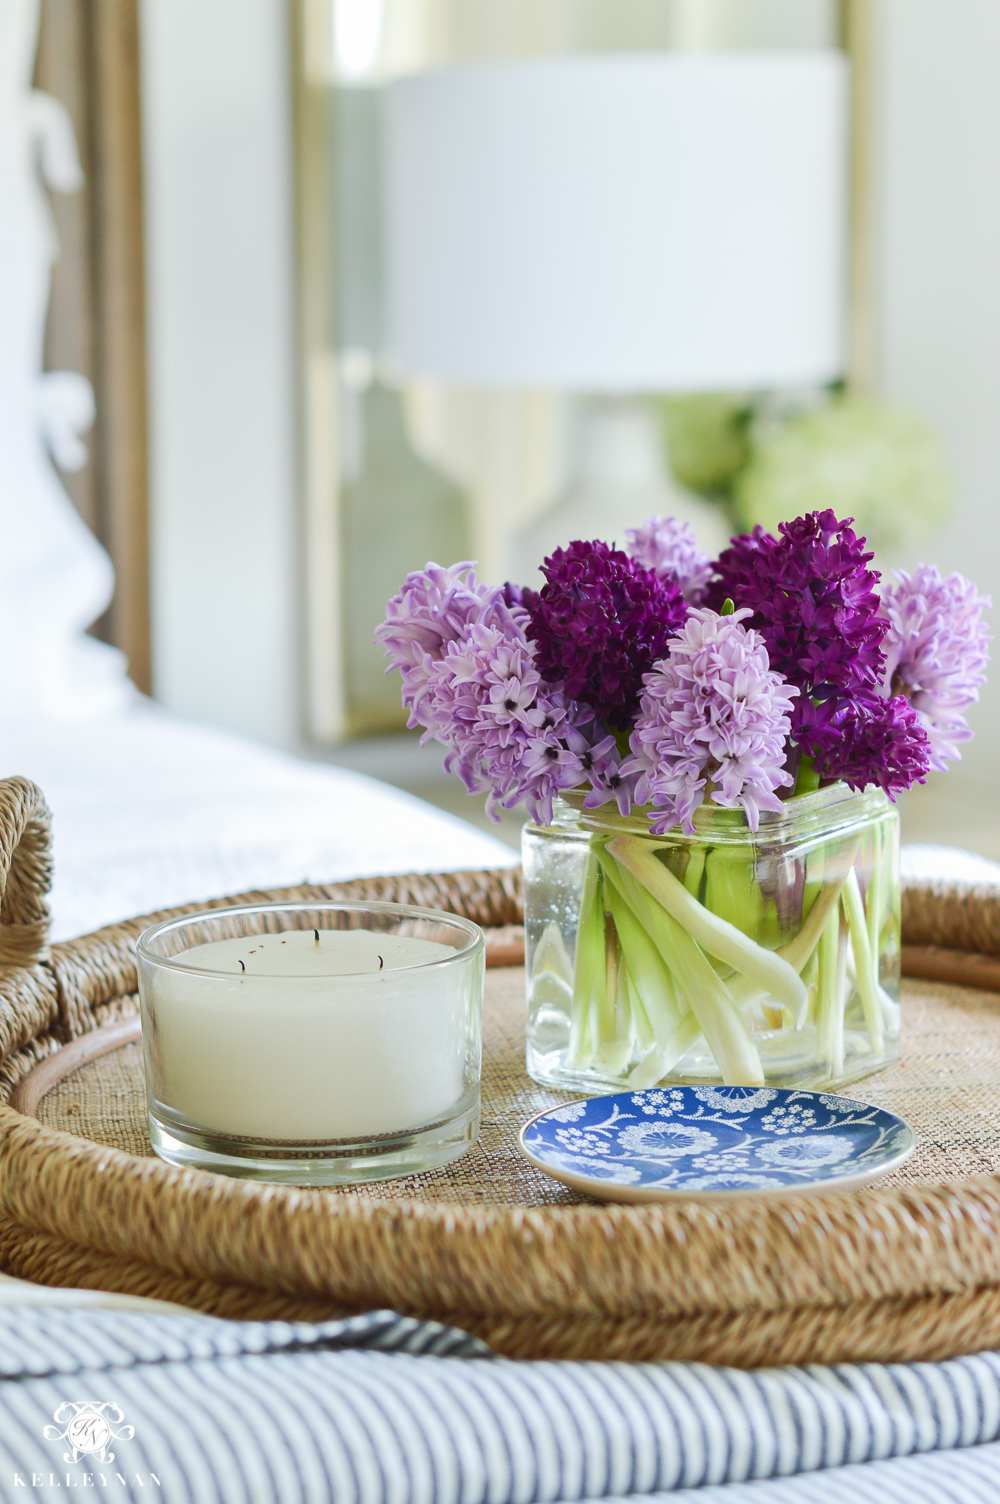 Shades of Summer Home Tour with Neutrals and Naturals- shades of purple hyacinths